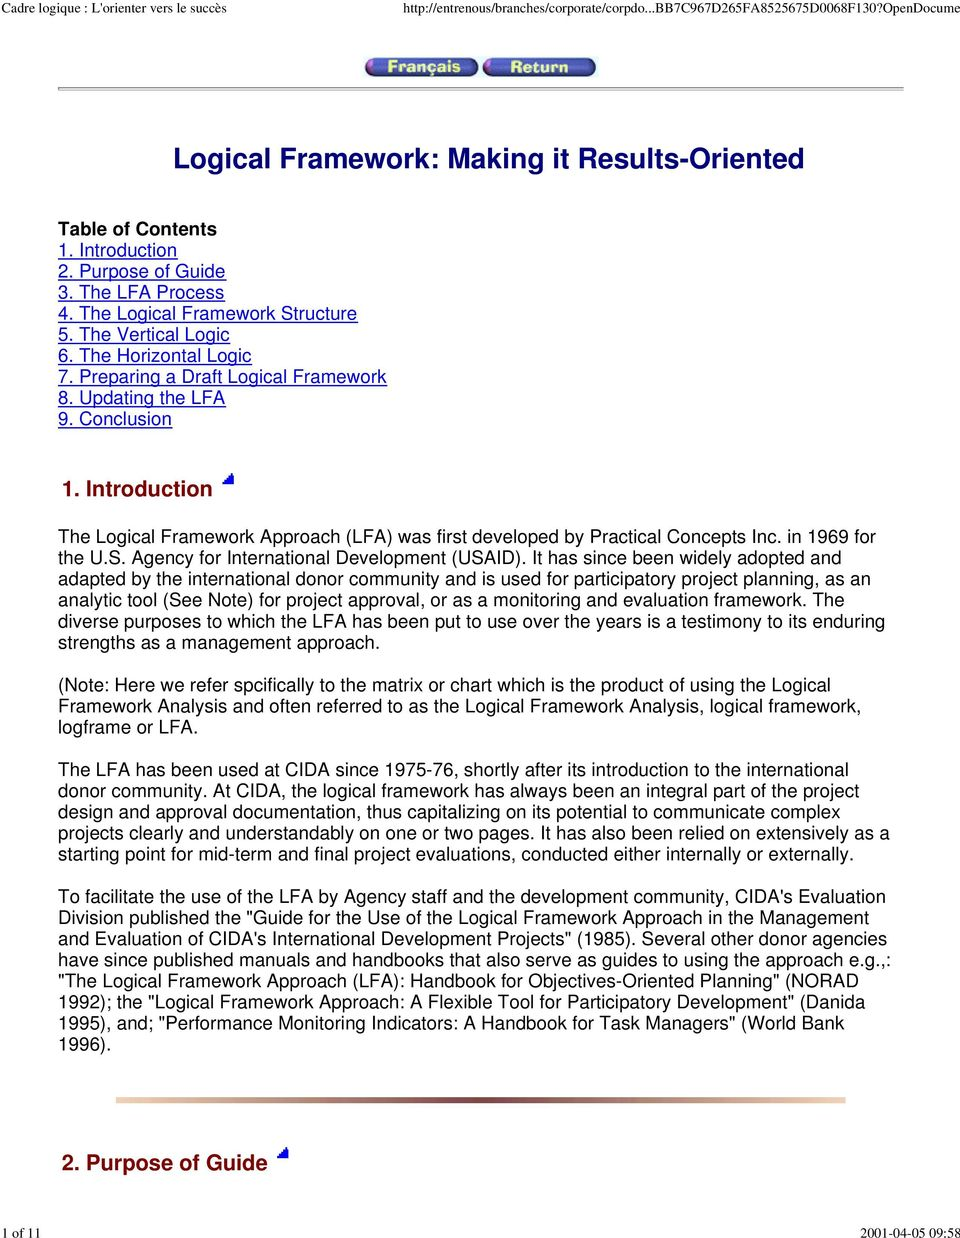 Introduction The Logical Framework Approach (LFA) was first developed by Practical Concepts Inc. in 1969 for the U.S. Agency for International Development (USAID).